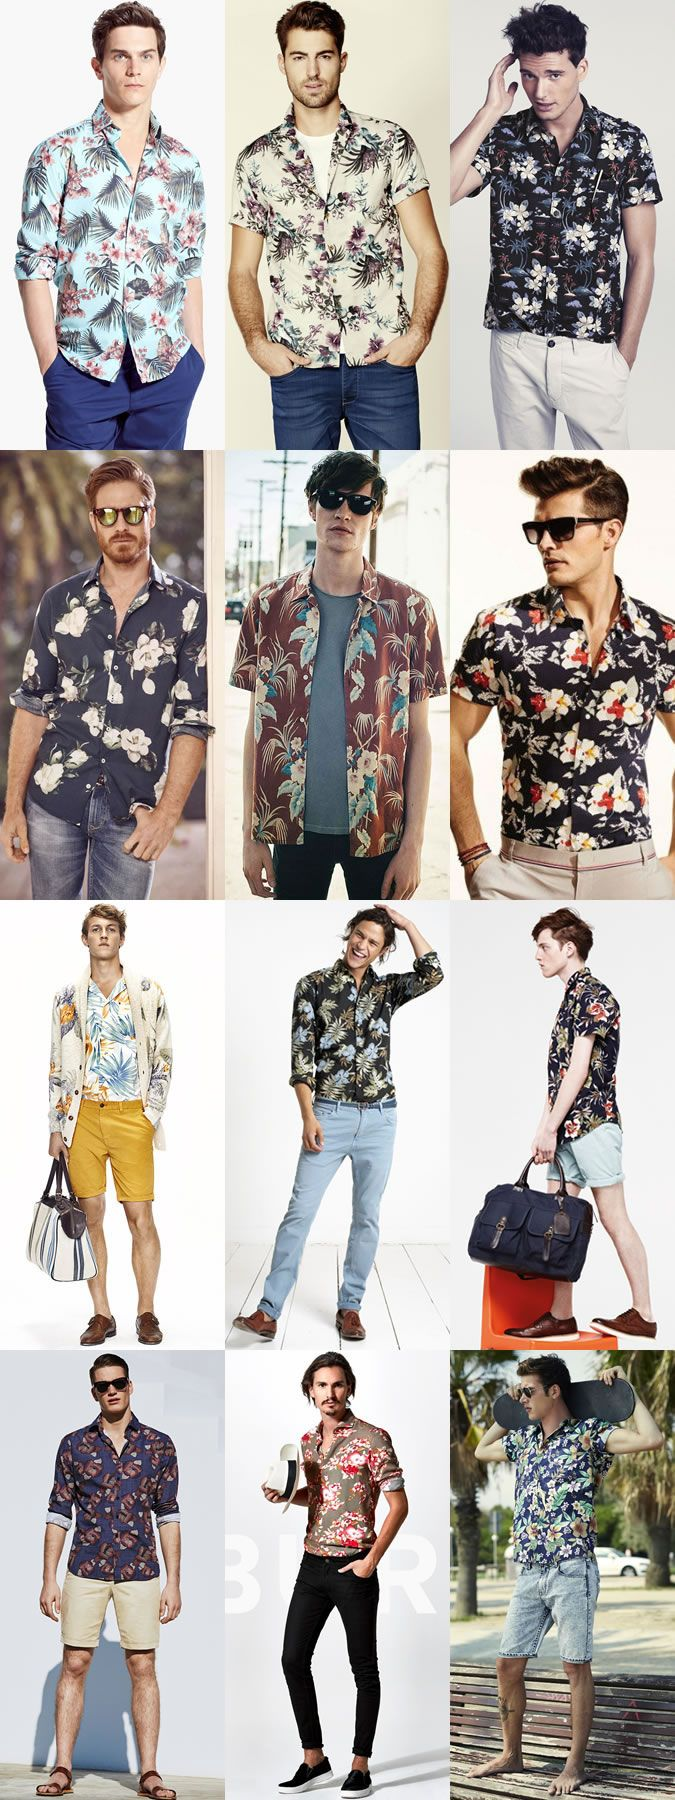 0b36d43d39c5 Pin by Rainista Style on Mr Classy   Urban style outfits, Mens ...